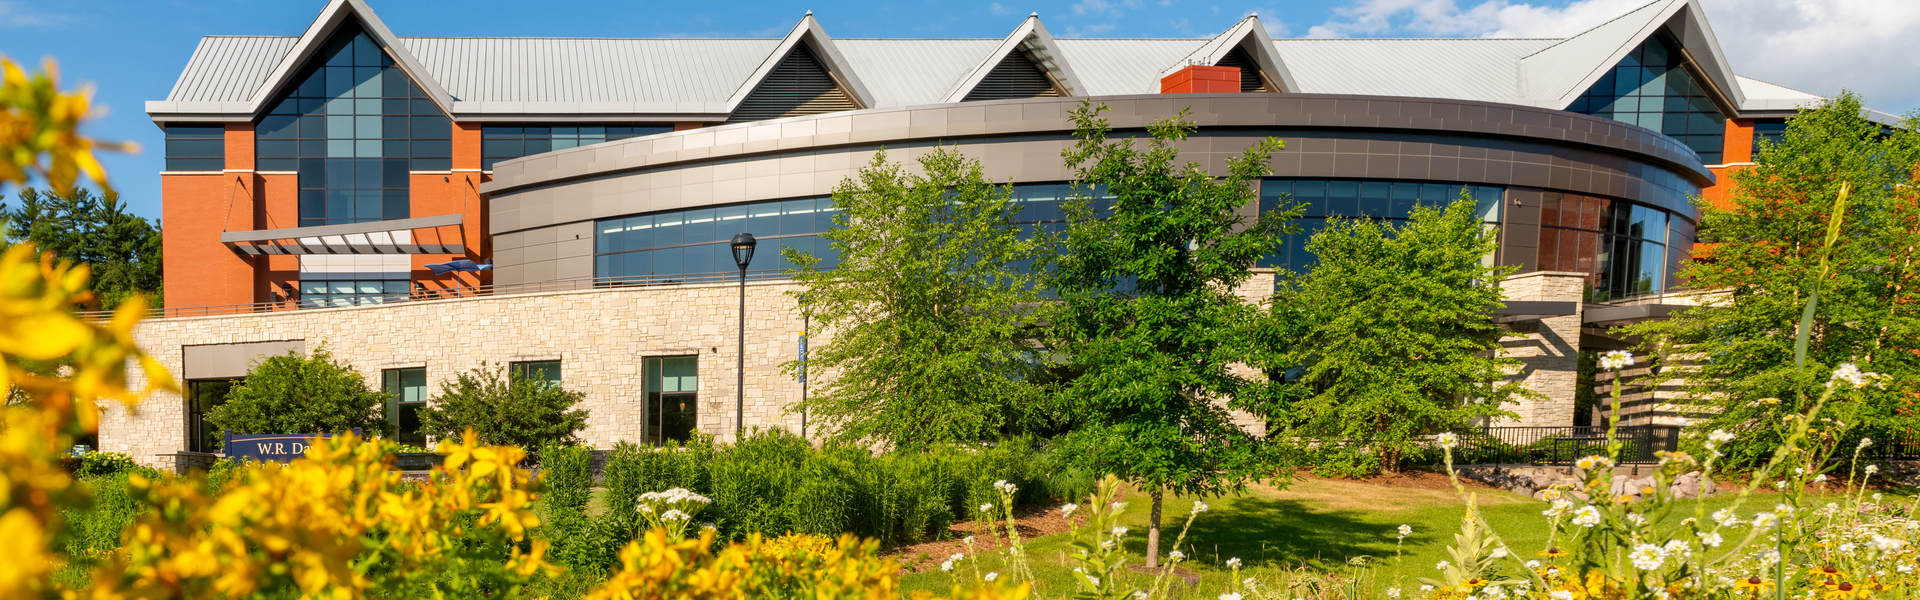 Exterior shot of Davies Student Center in the sunshine